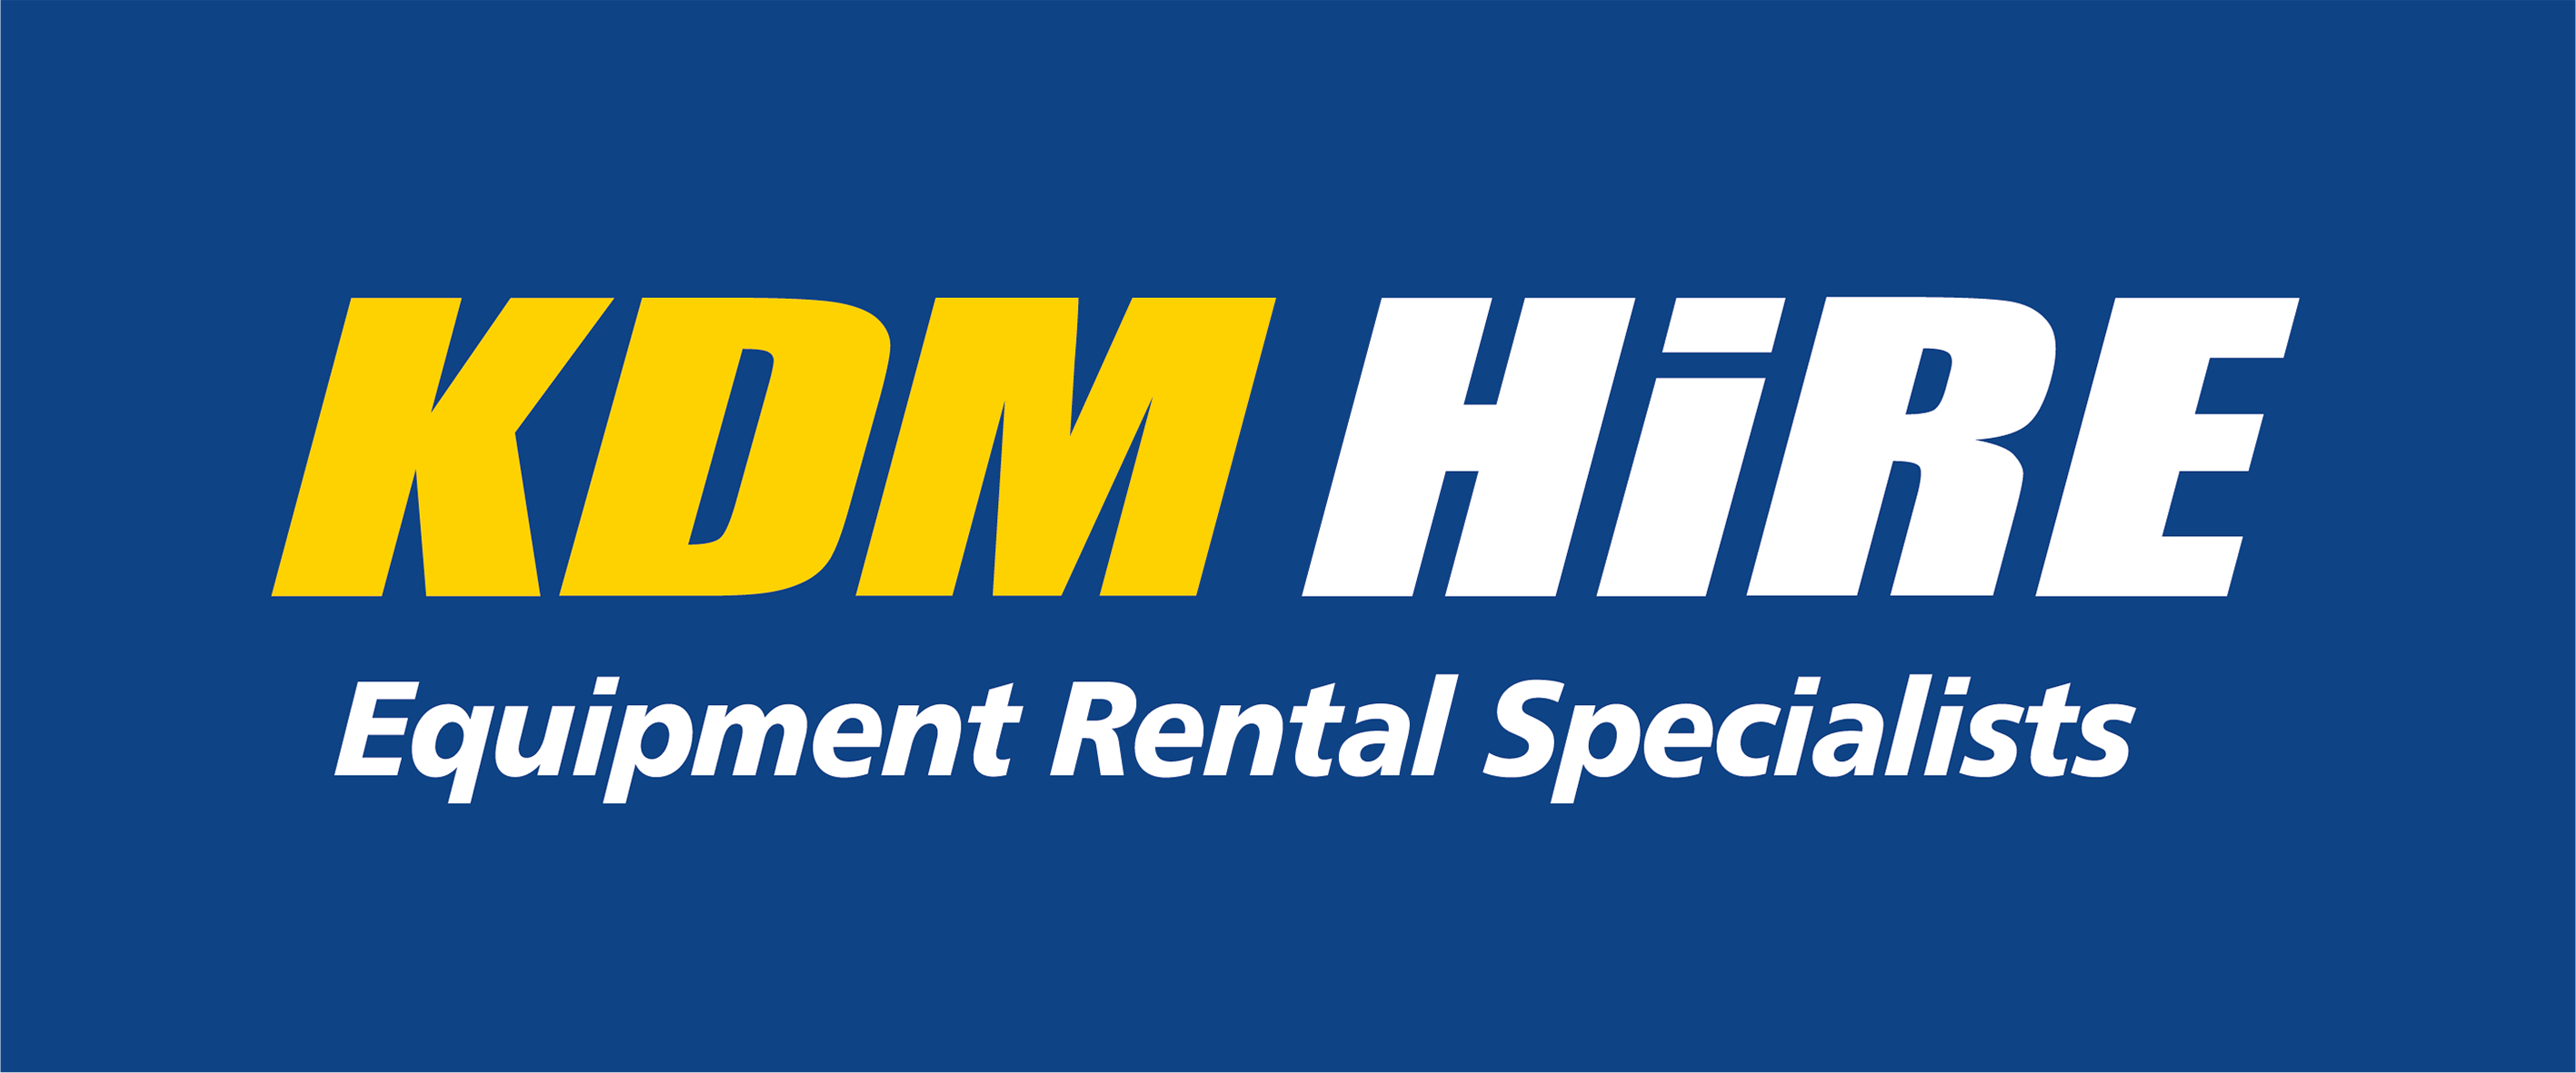 KDM Hire logo banner blue and yellow